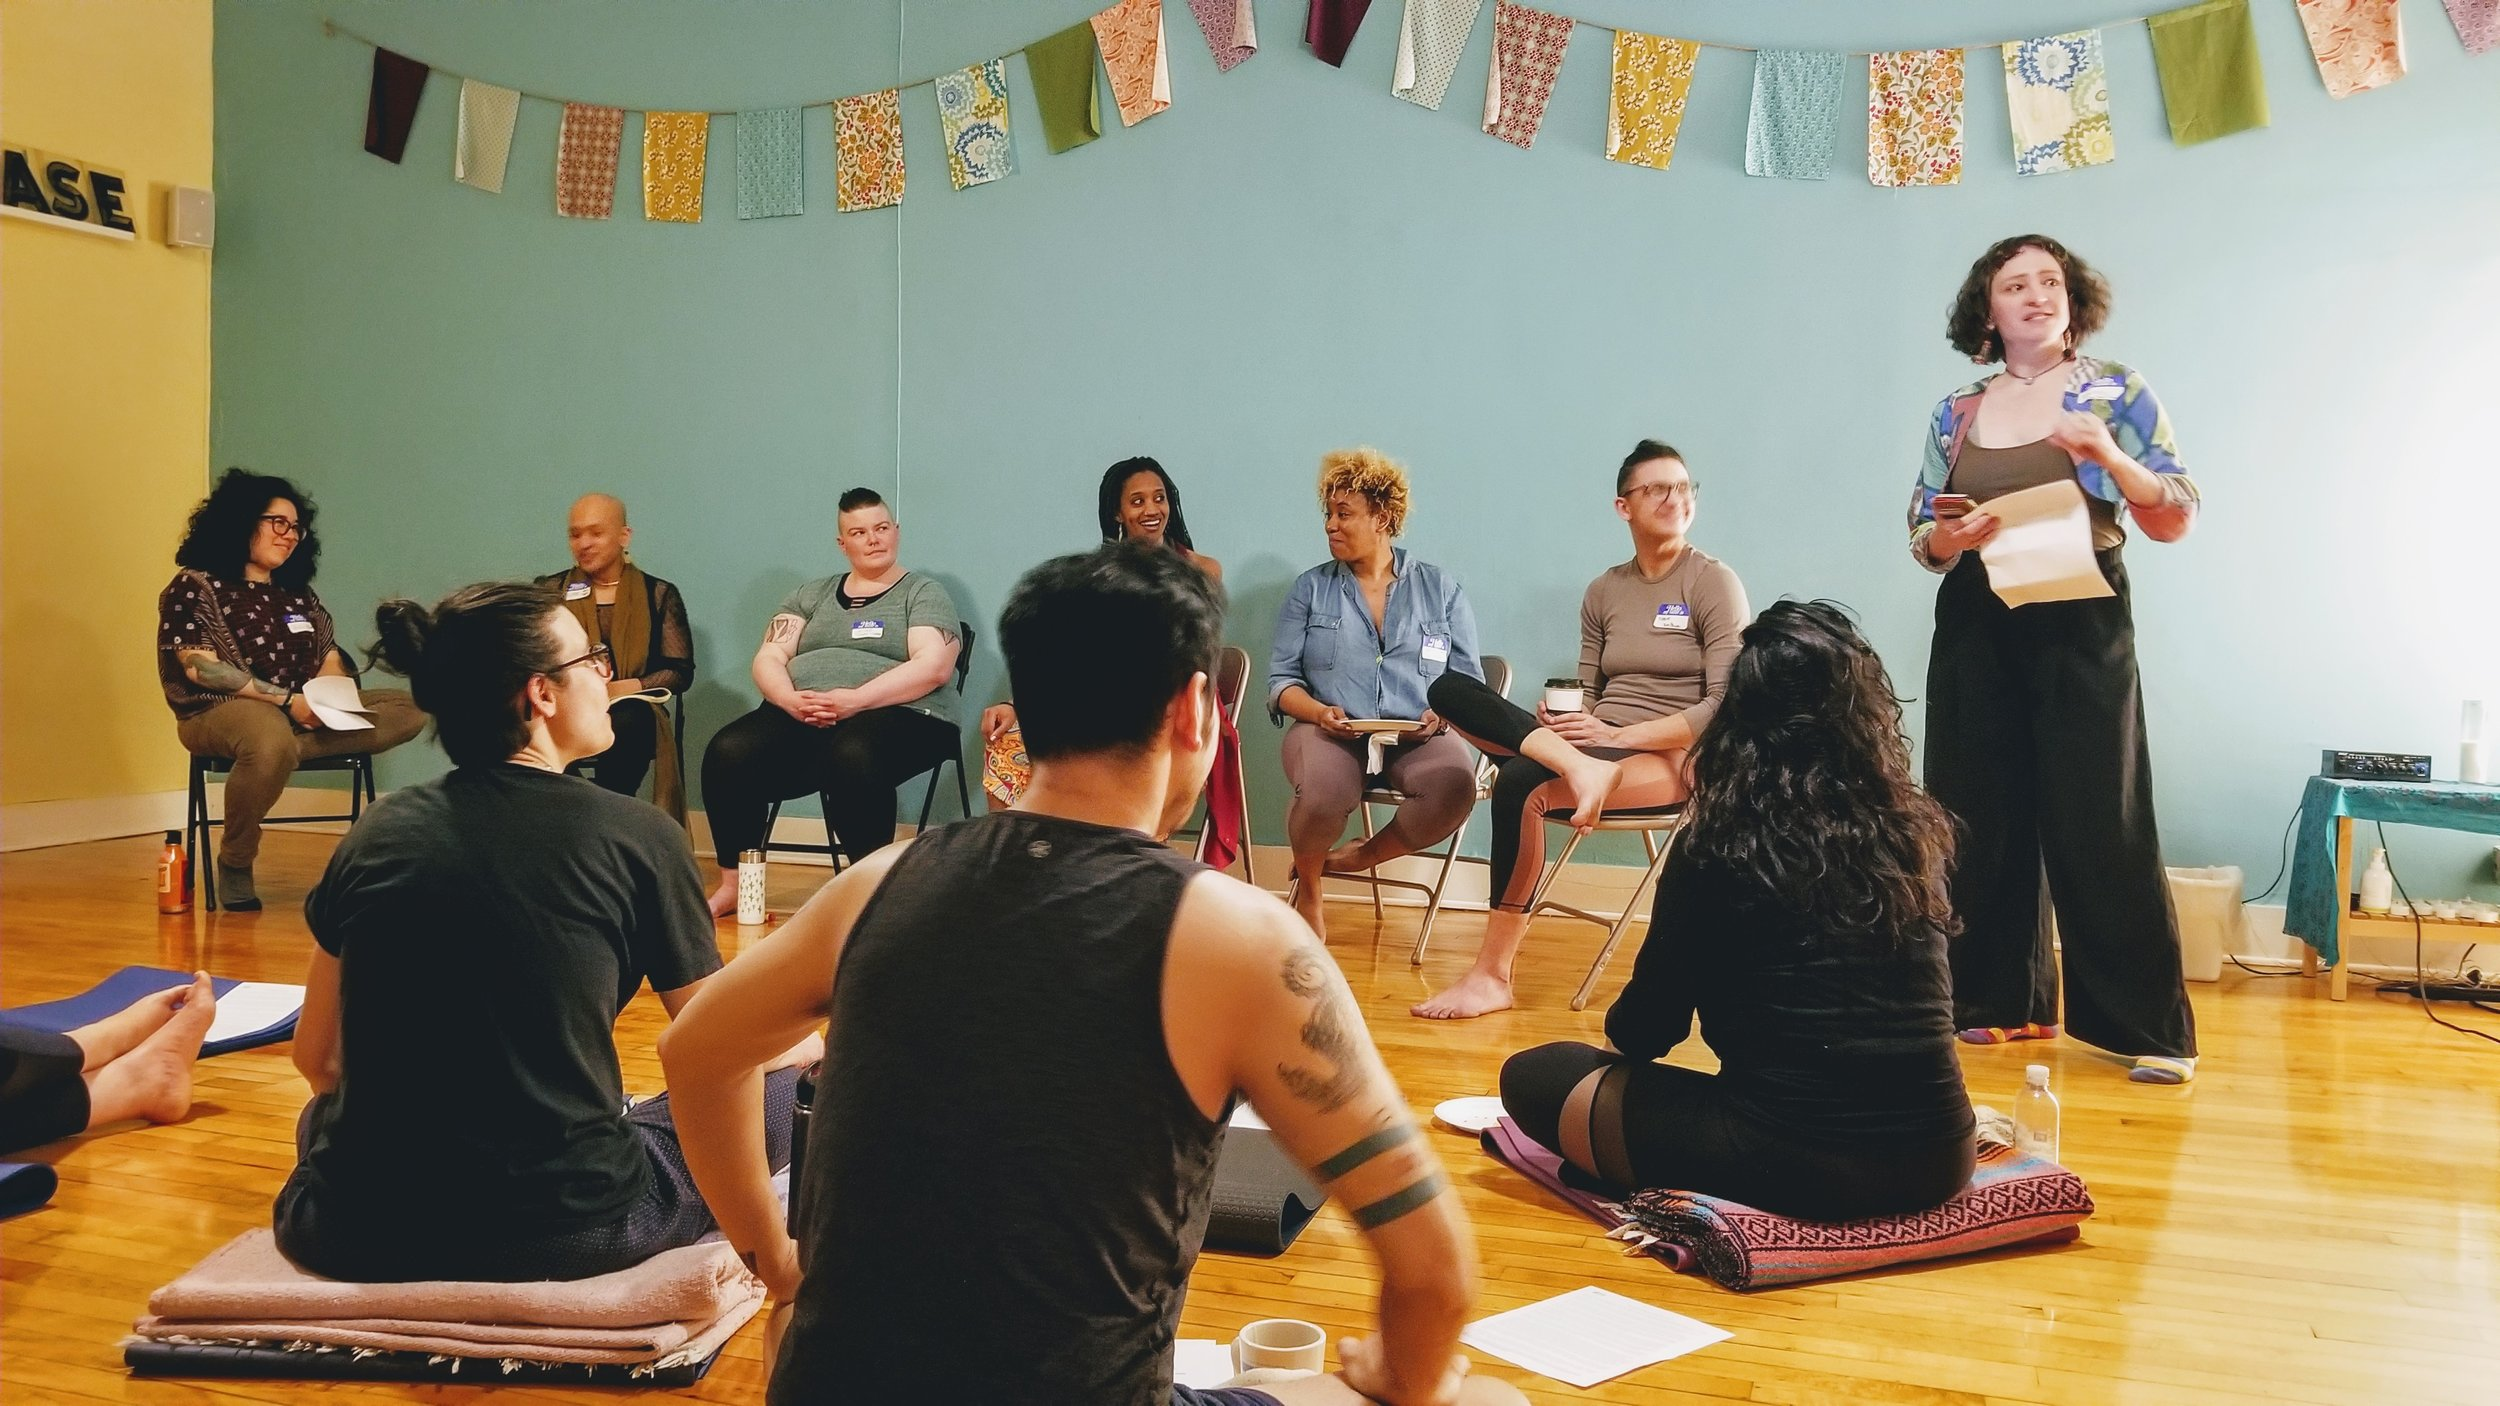 SEYN Spring 2019 Gathering at Ganesha Yoga and Adventures in Fitness.